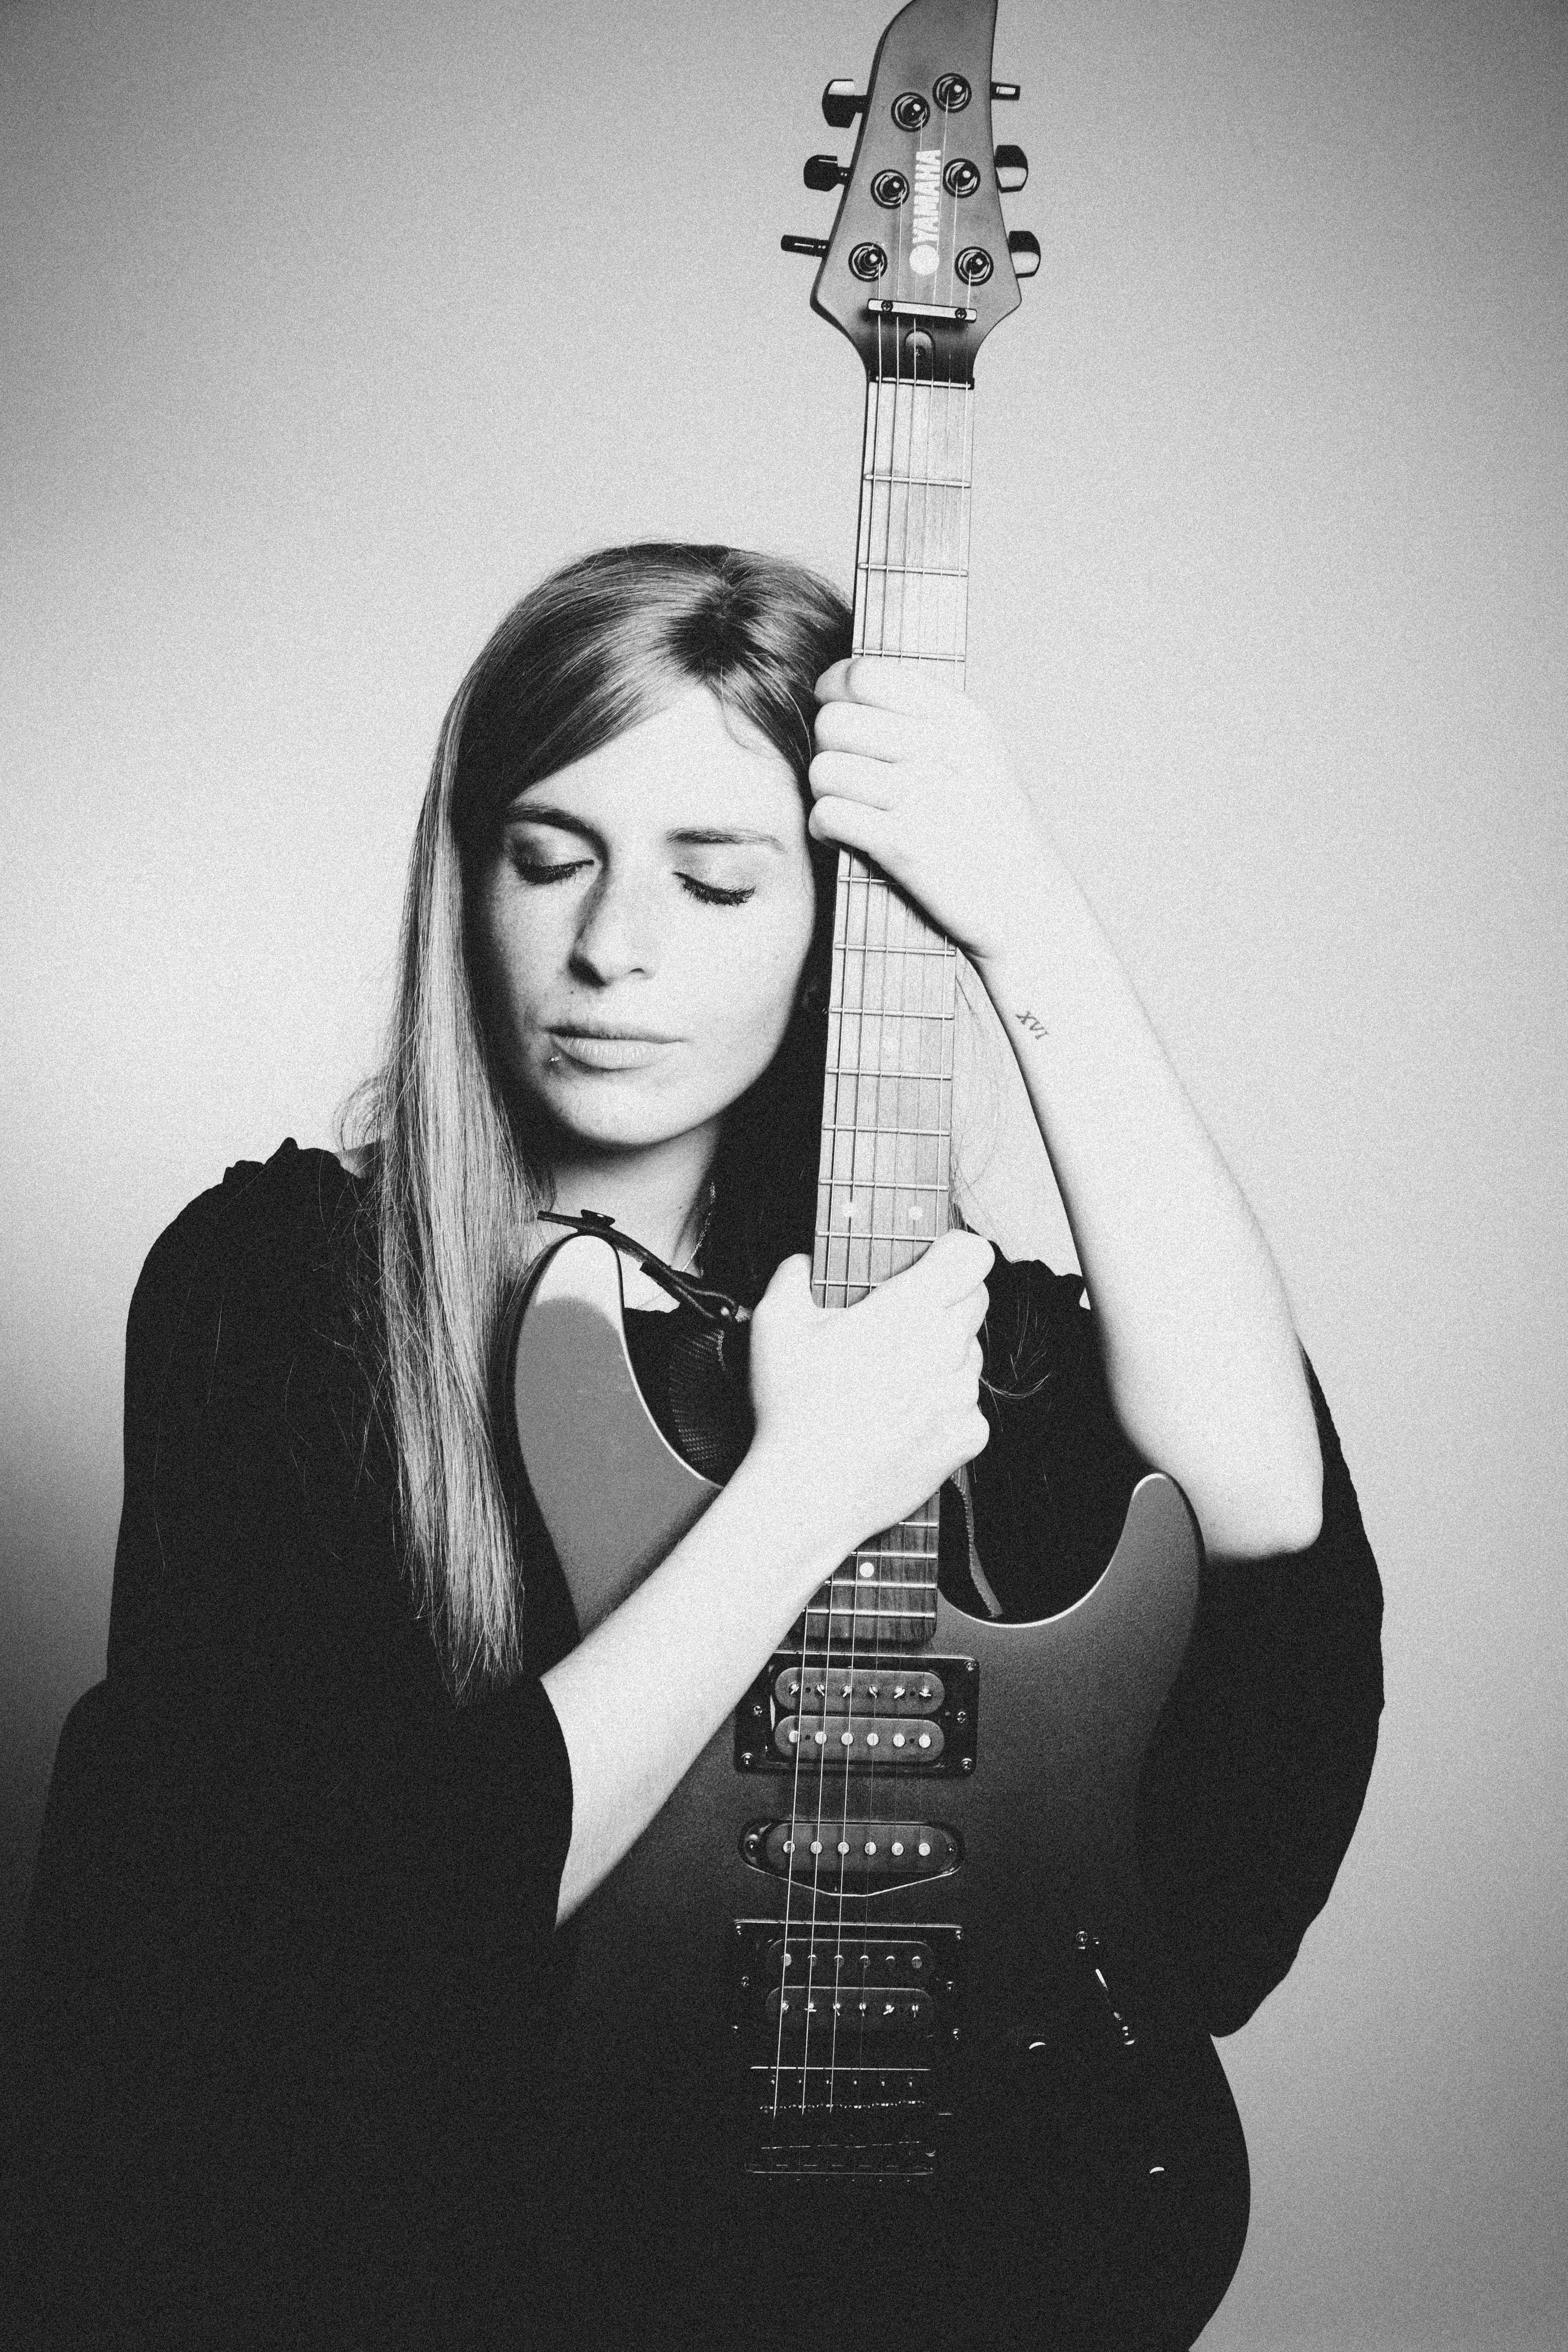 Grayscale Photography of Woman Holding Electric Guitar